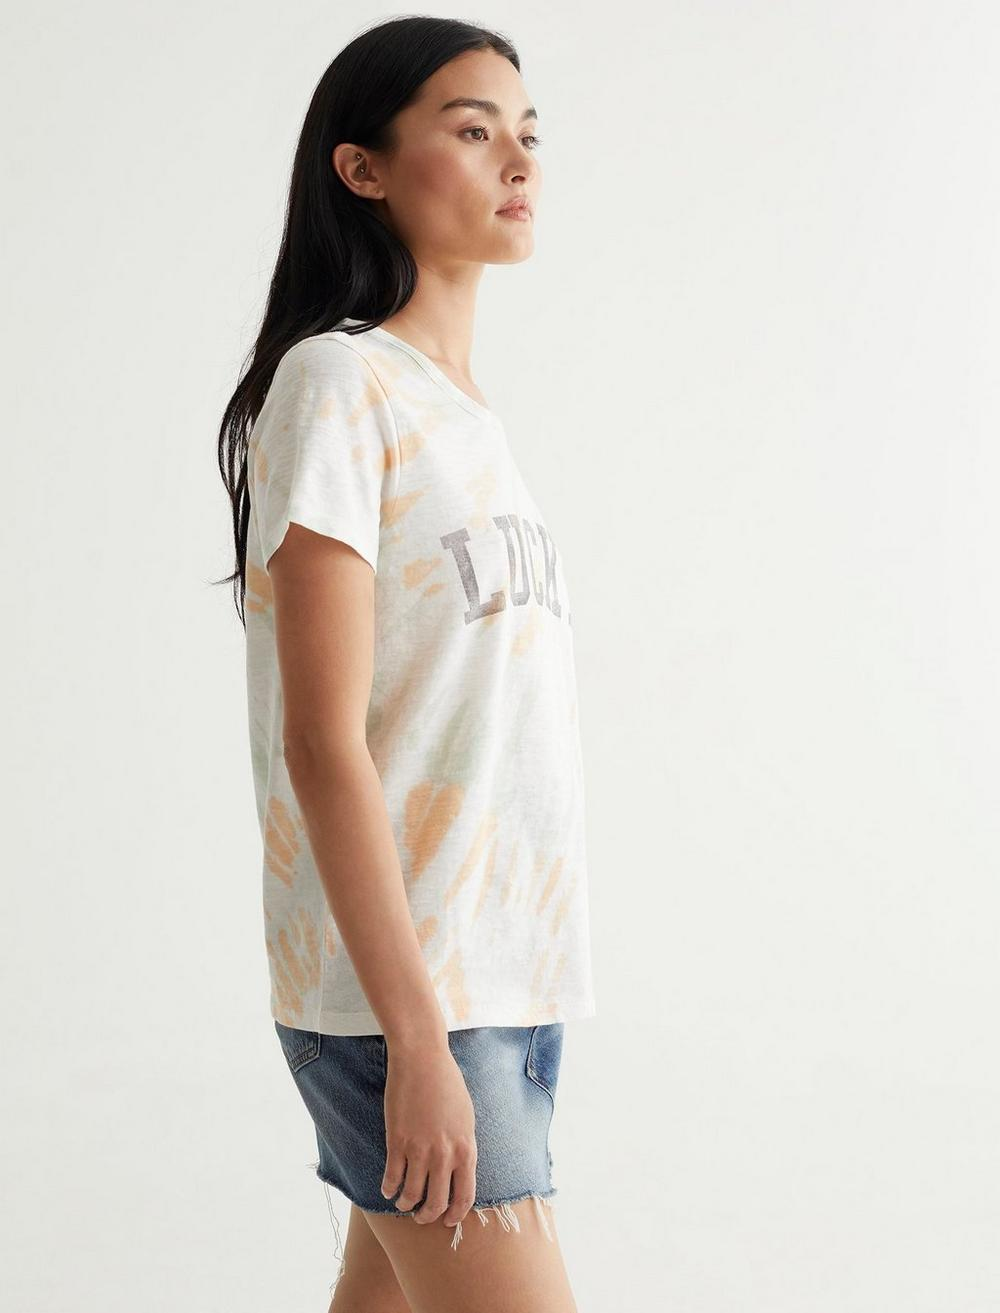 LUCKY FONT CLASSIC TEE, image 3